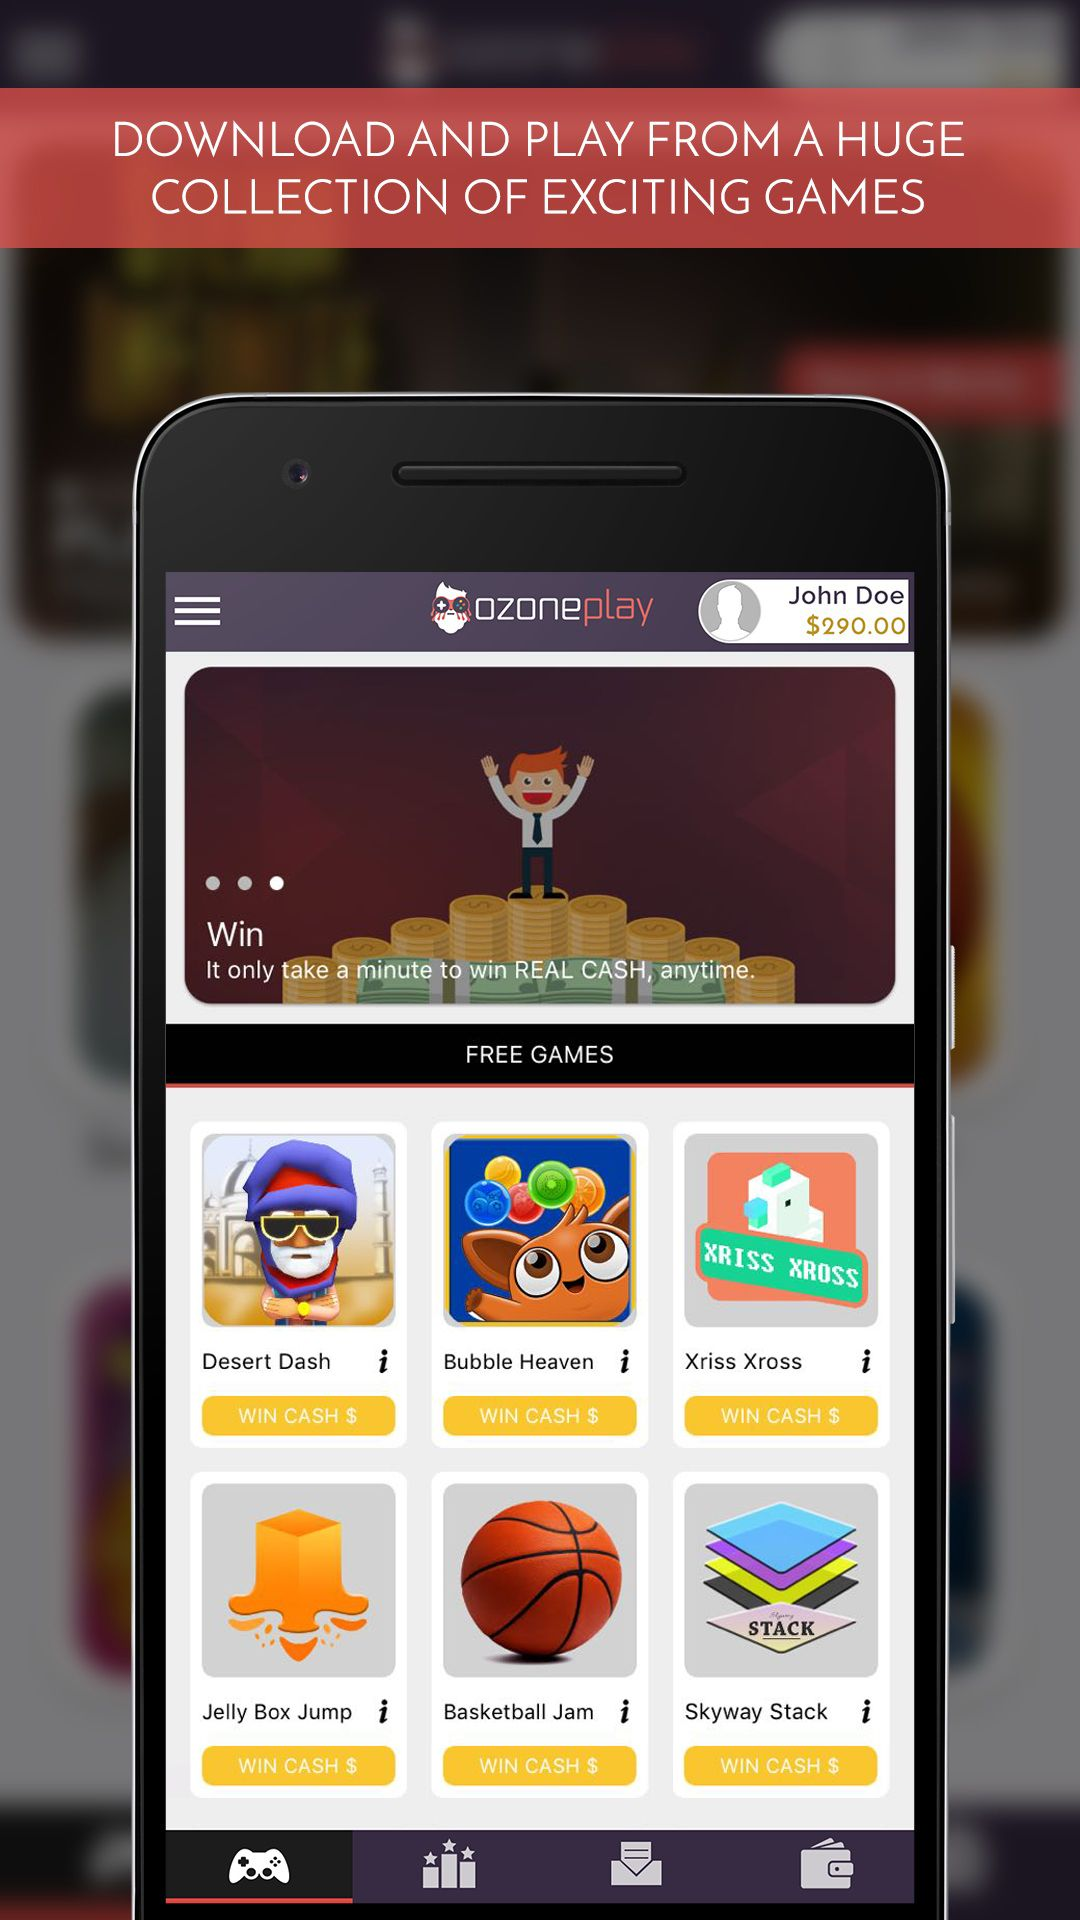 Play Games For Real Money - Download Apps That Earn You Cash